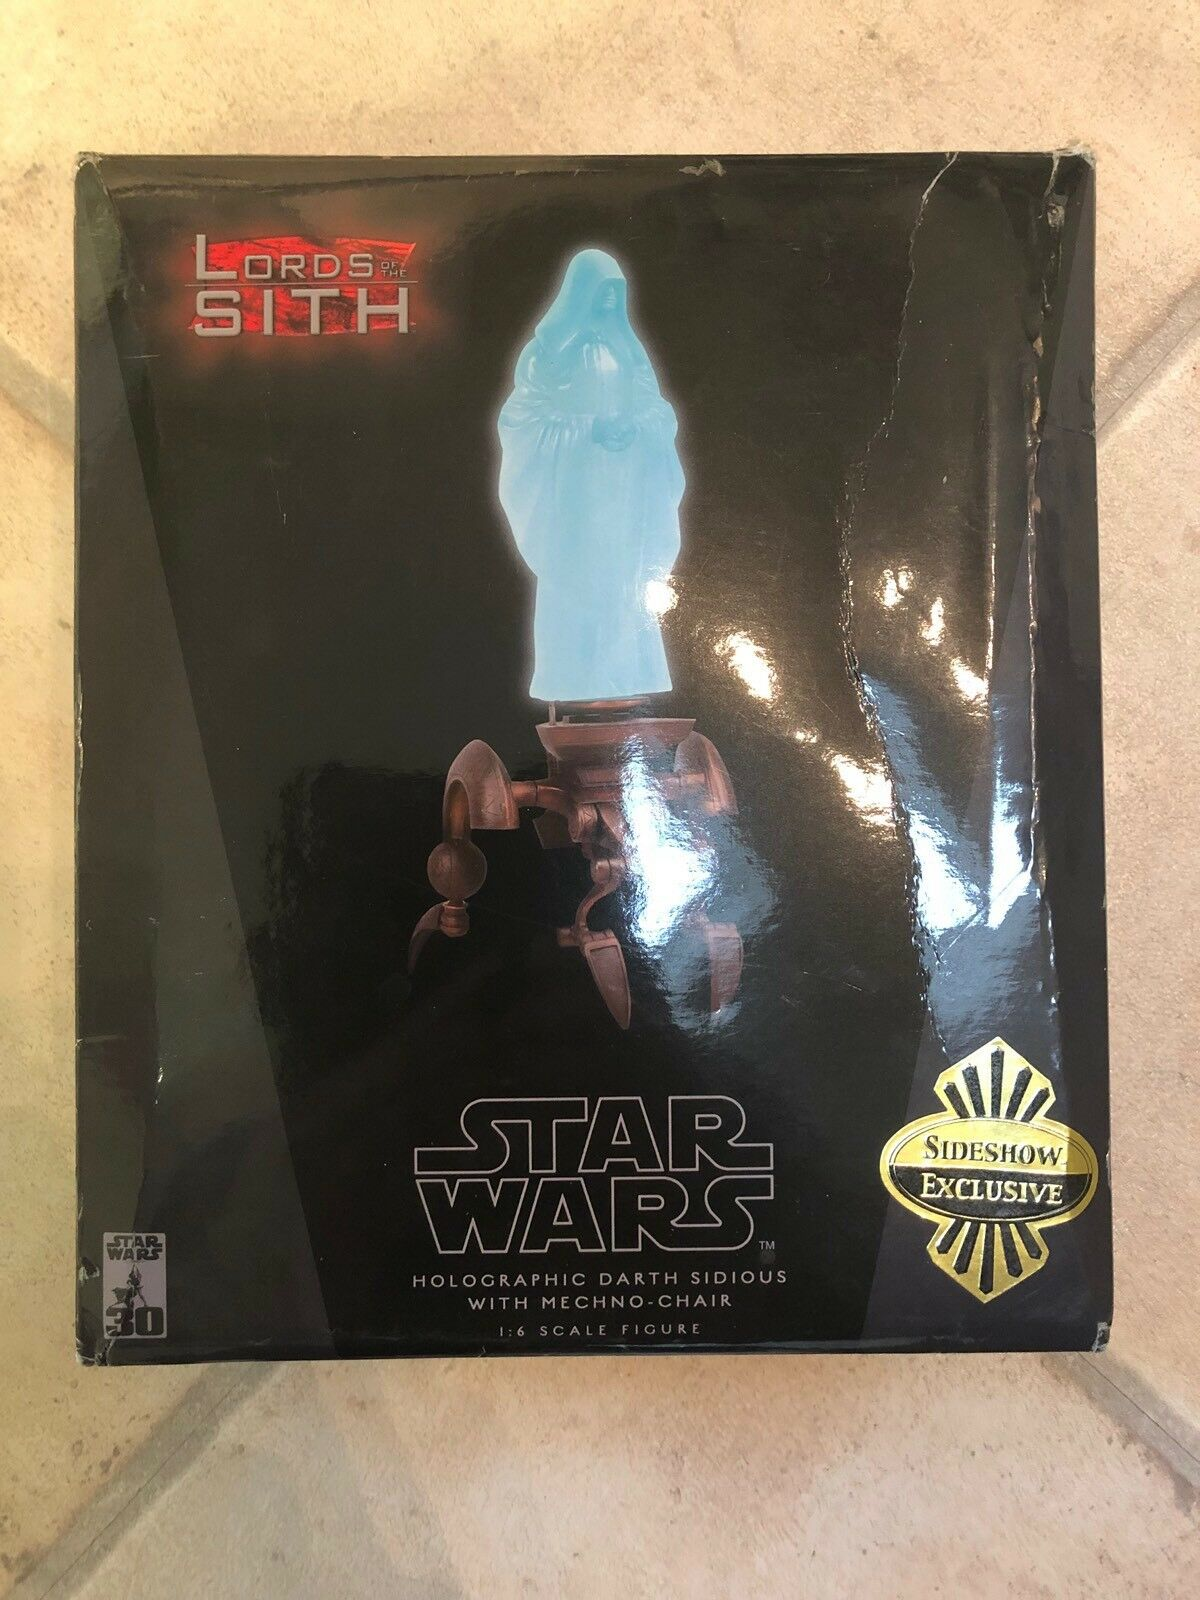 Sideshow Holográfico De Estrella Wars Darth Sidious con mechno-silla exclusivo C1017